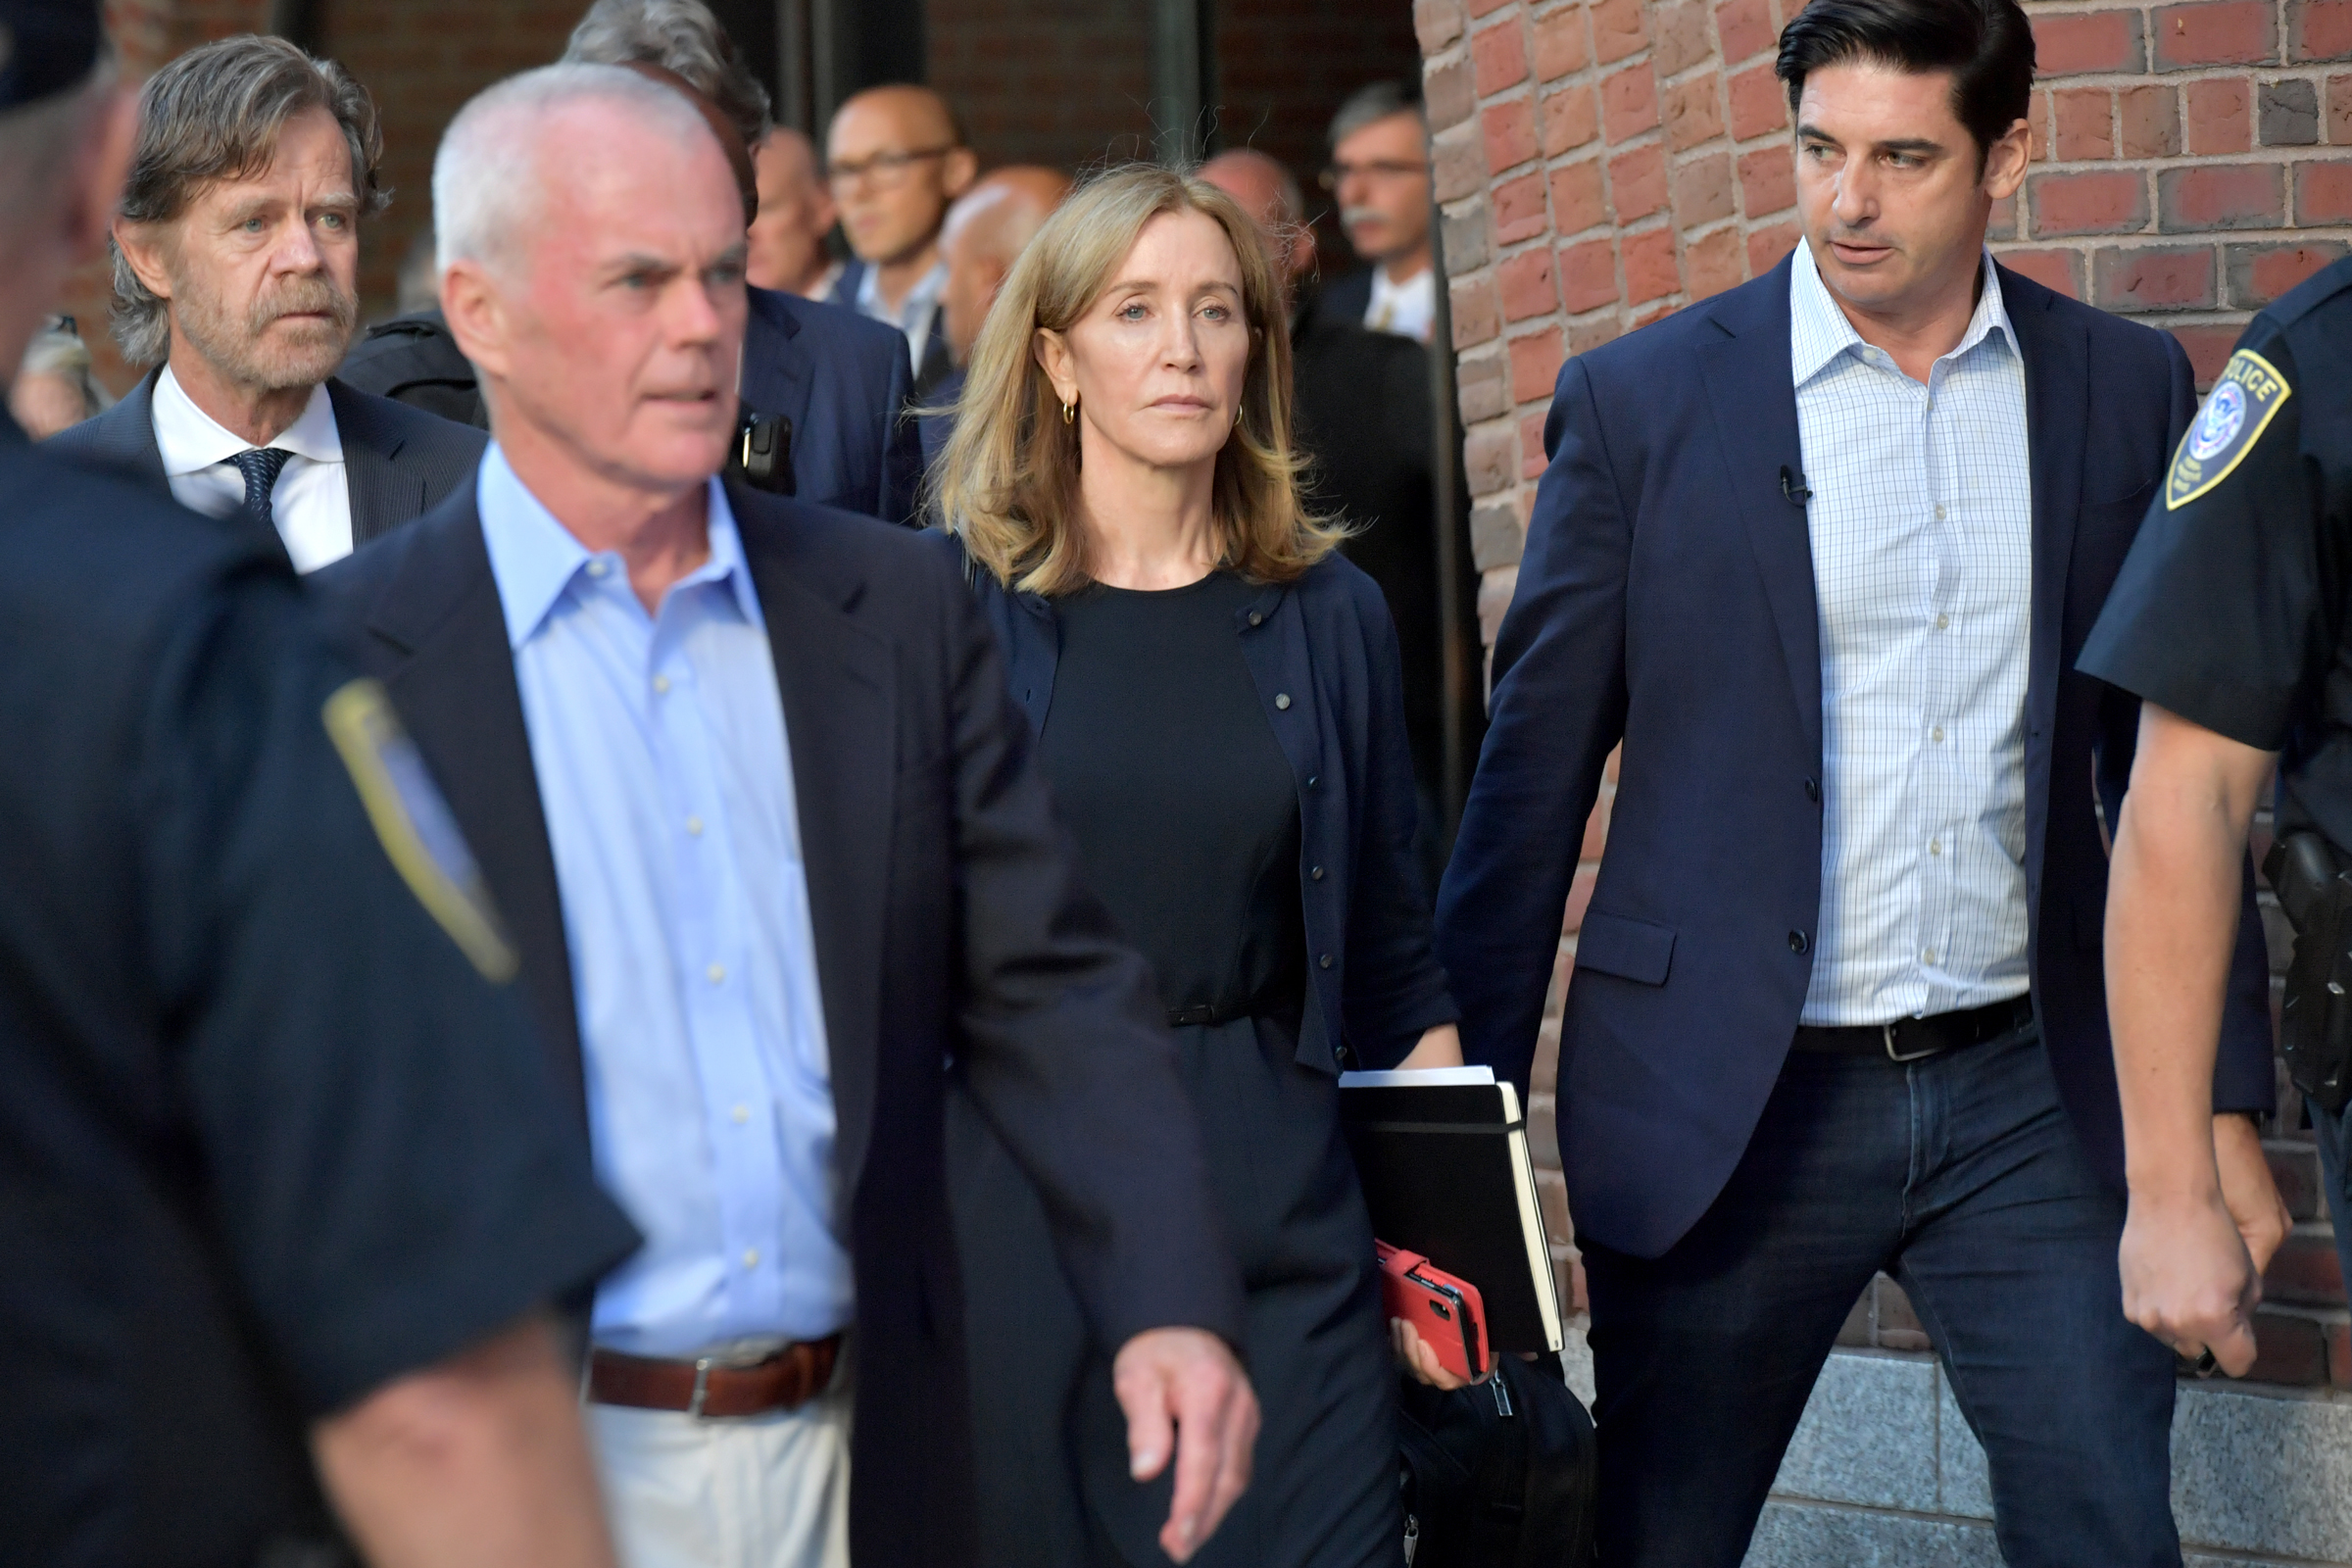 Felicity Huffman, a white woman, walks alongside security following her trial of the college admissions scandal.